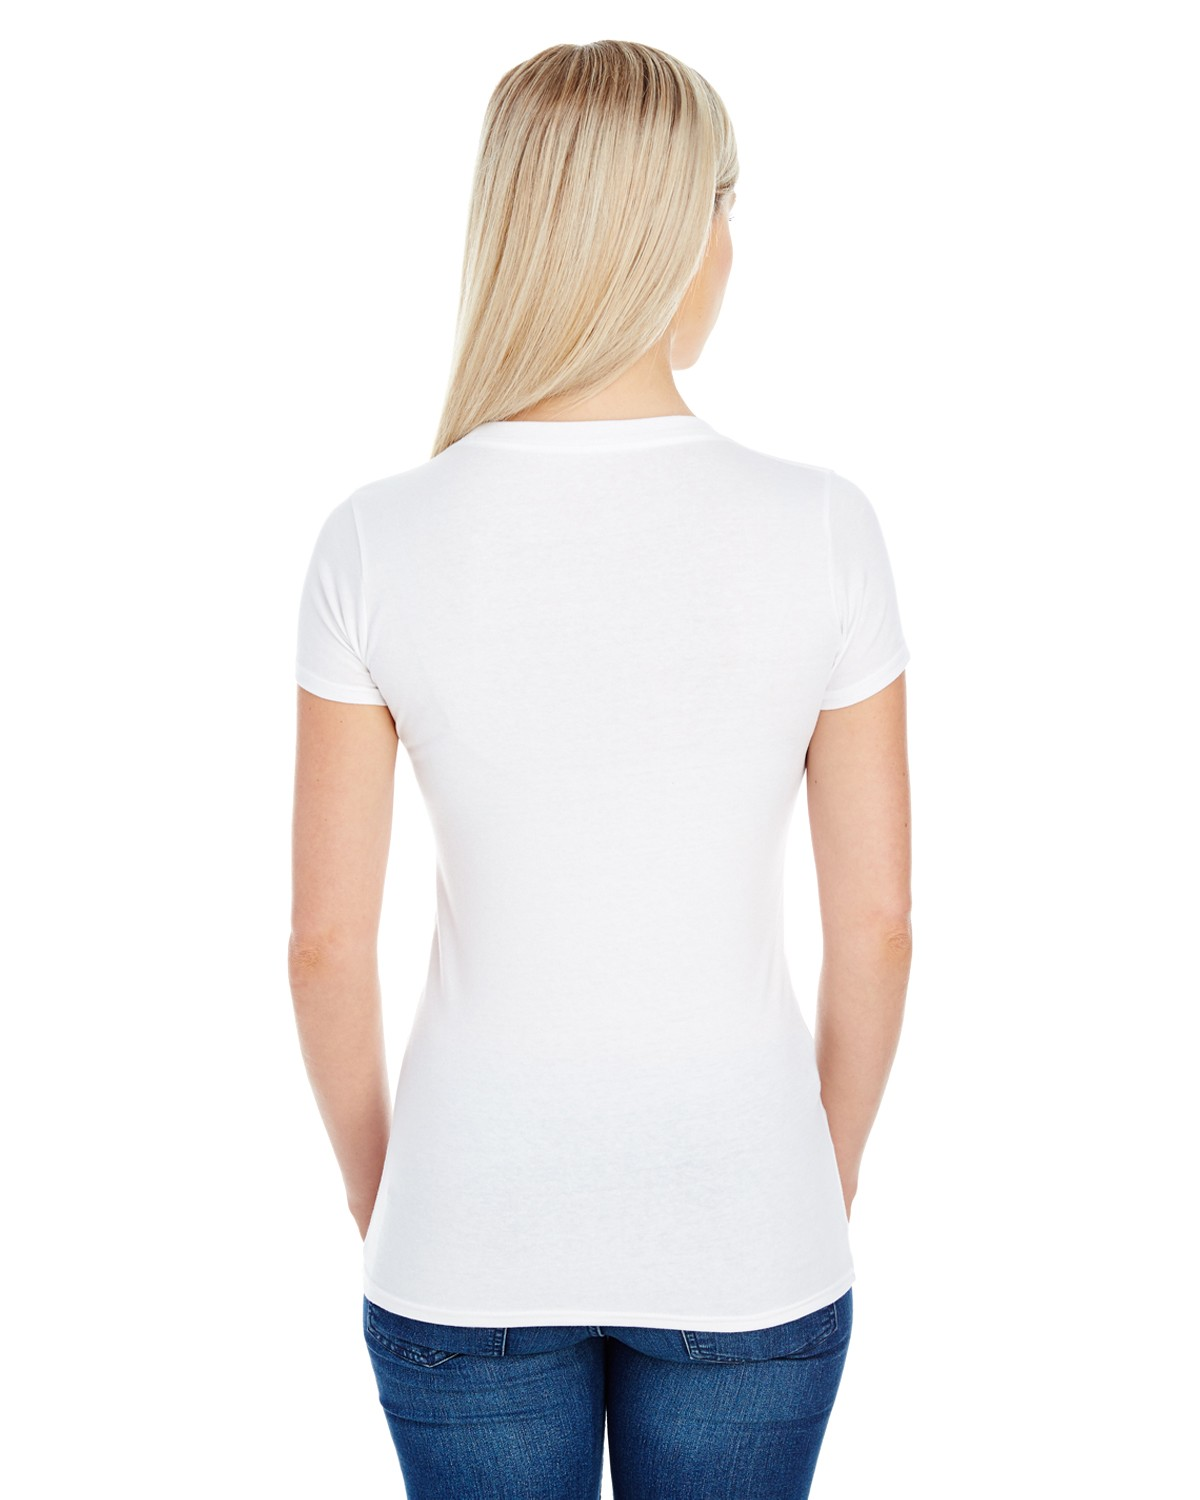 220S Threadfast Apparel ACTIVE WHITE